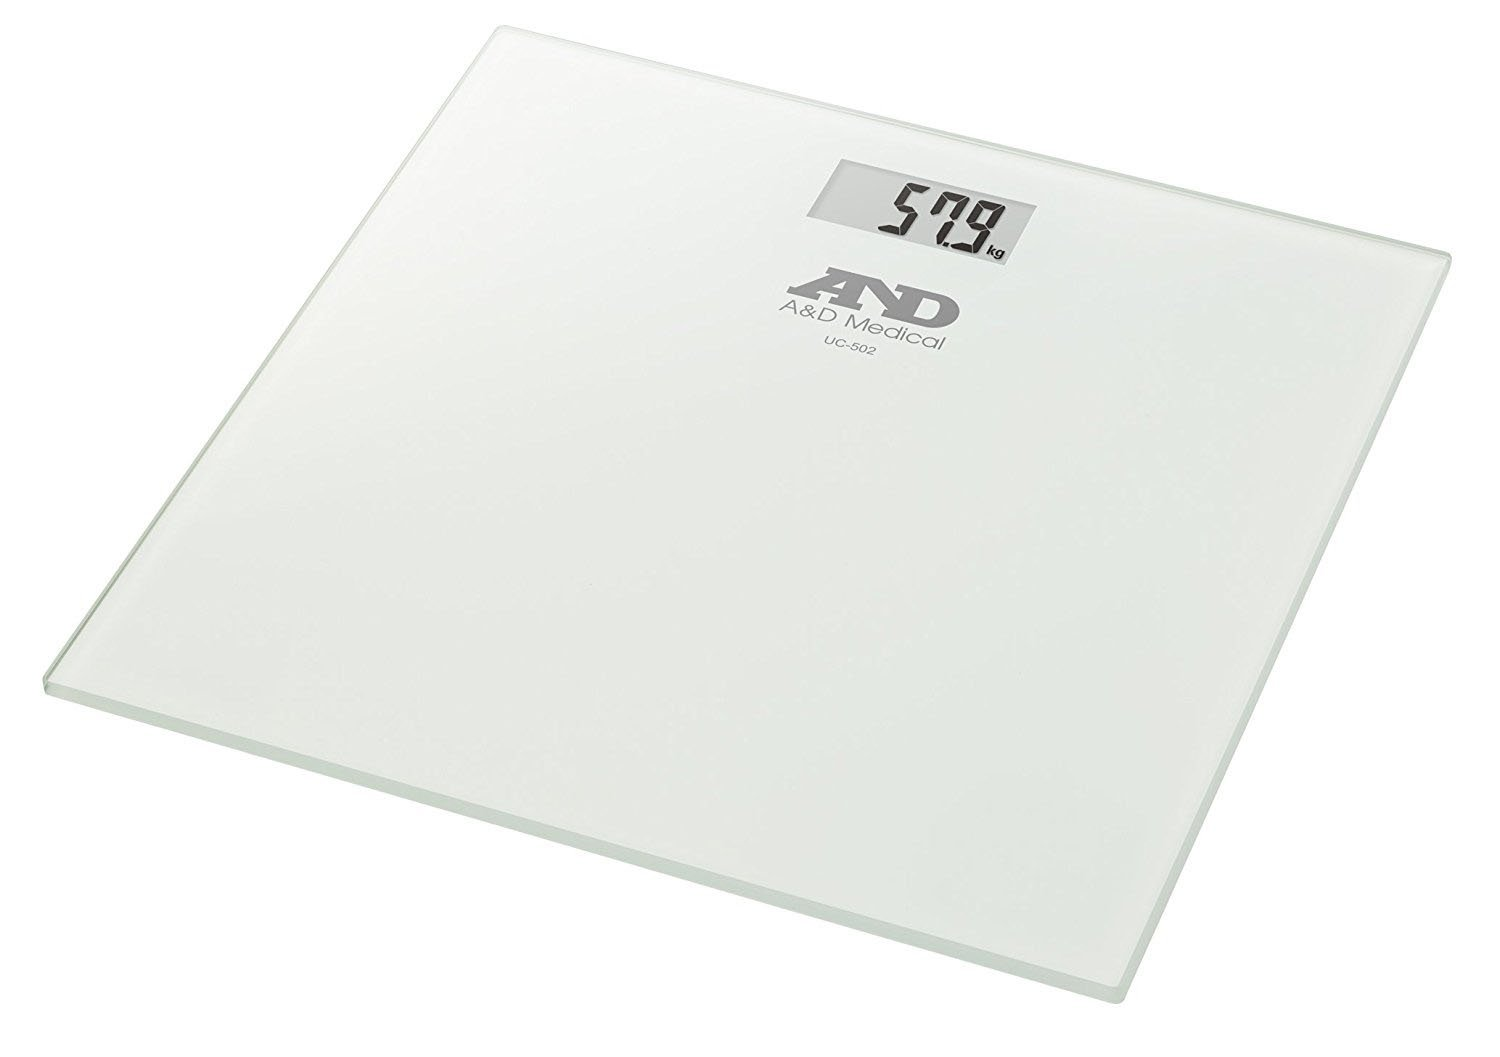 A&D Medical UC-502 High Precision Digital Body Weight Bathroom Scales with Step-On Technology, 28st/180kg/400lb, Slim Design